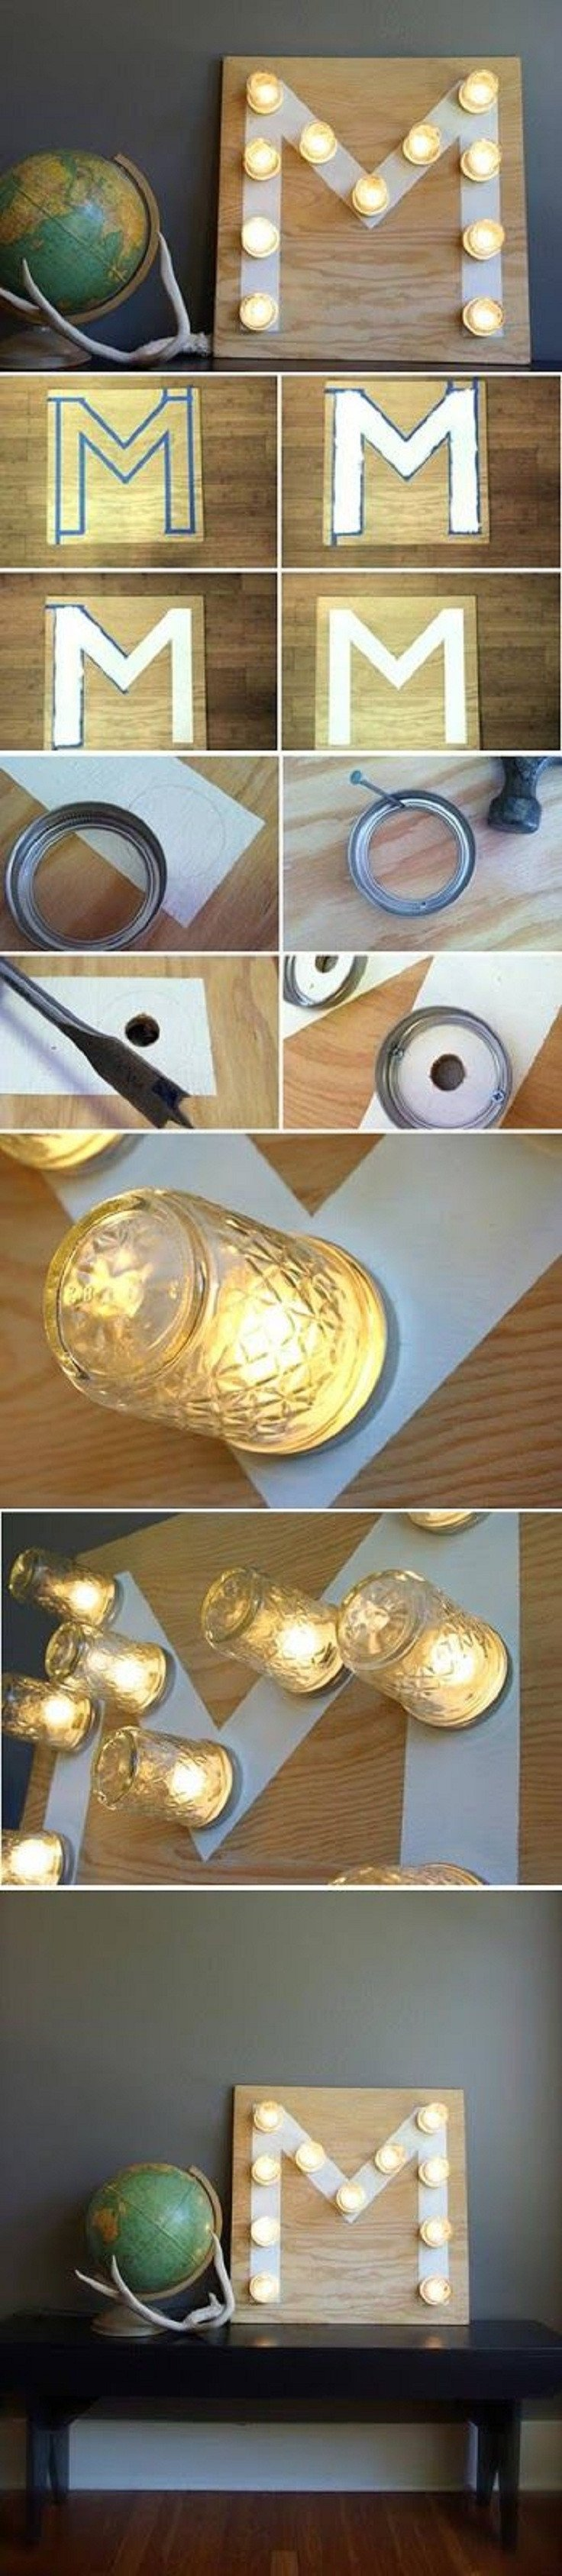 Diy Projects for Home Decor Elegant 10 Simply Breathtaking Diy Home Decor Projects that Will Magically Beautify Your Interior